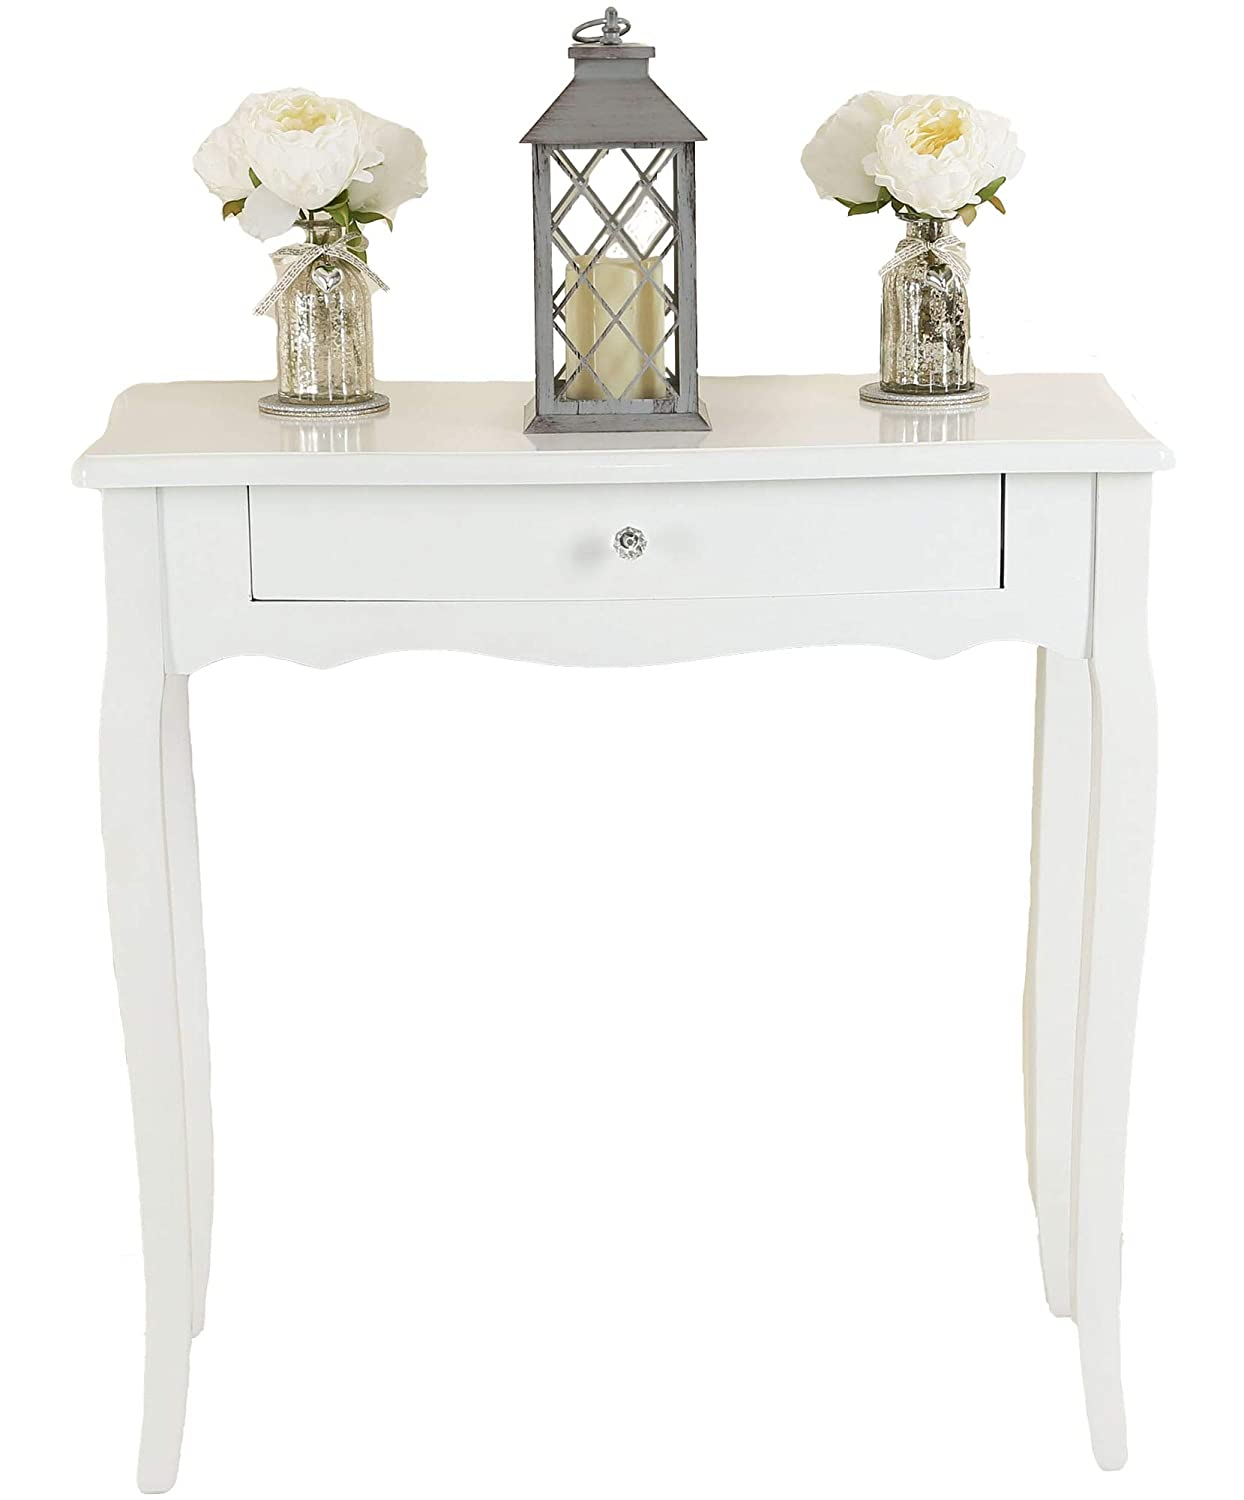 Chic Dressing Table Drawer Wood Hallway Bedroom Furniture Console Table White UK